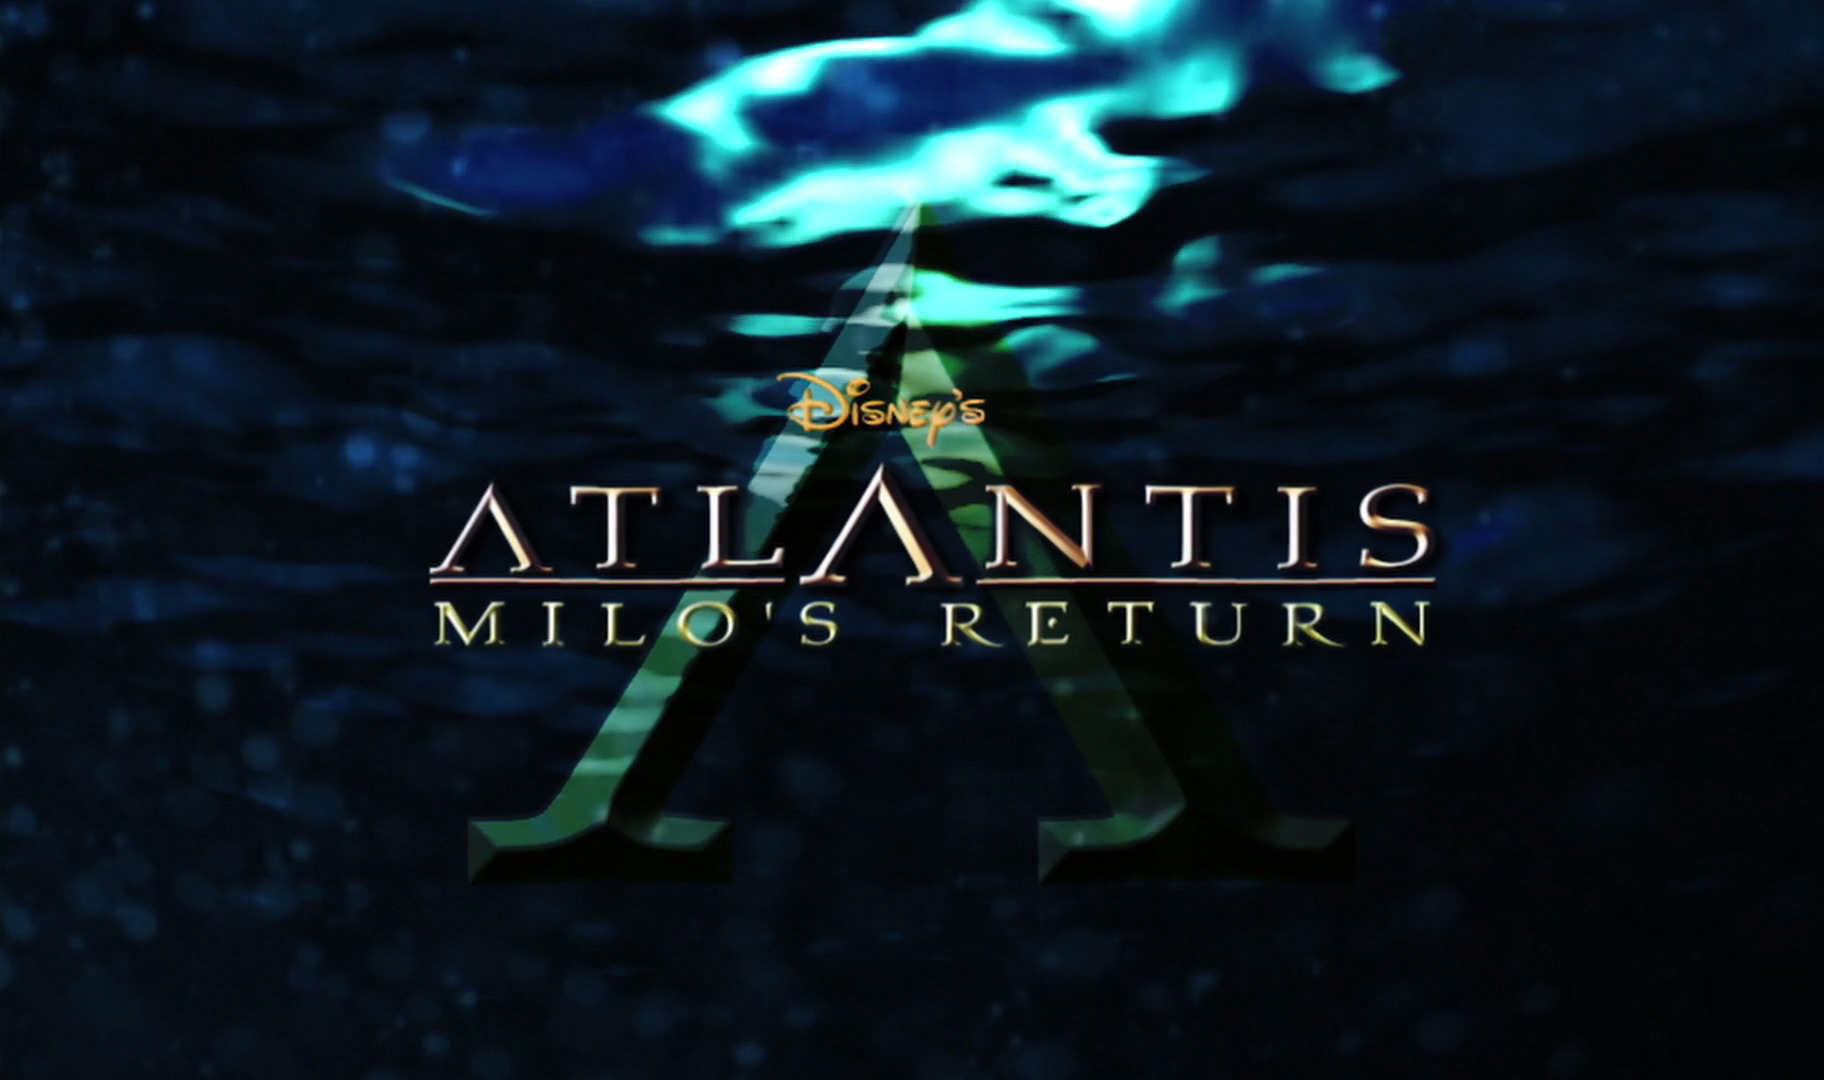 atlantis 2 milos return full movie free download